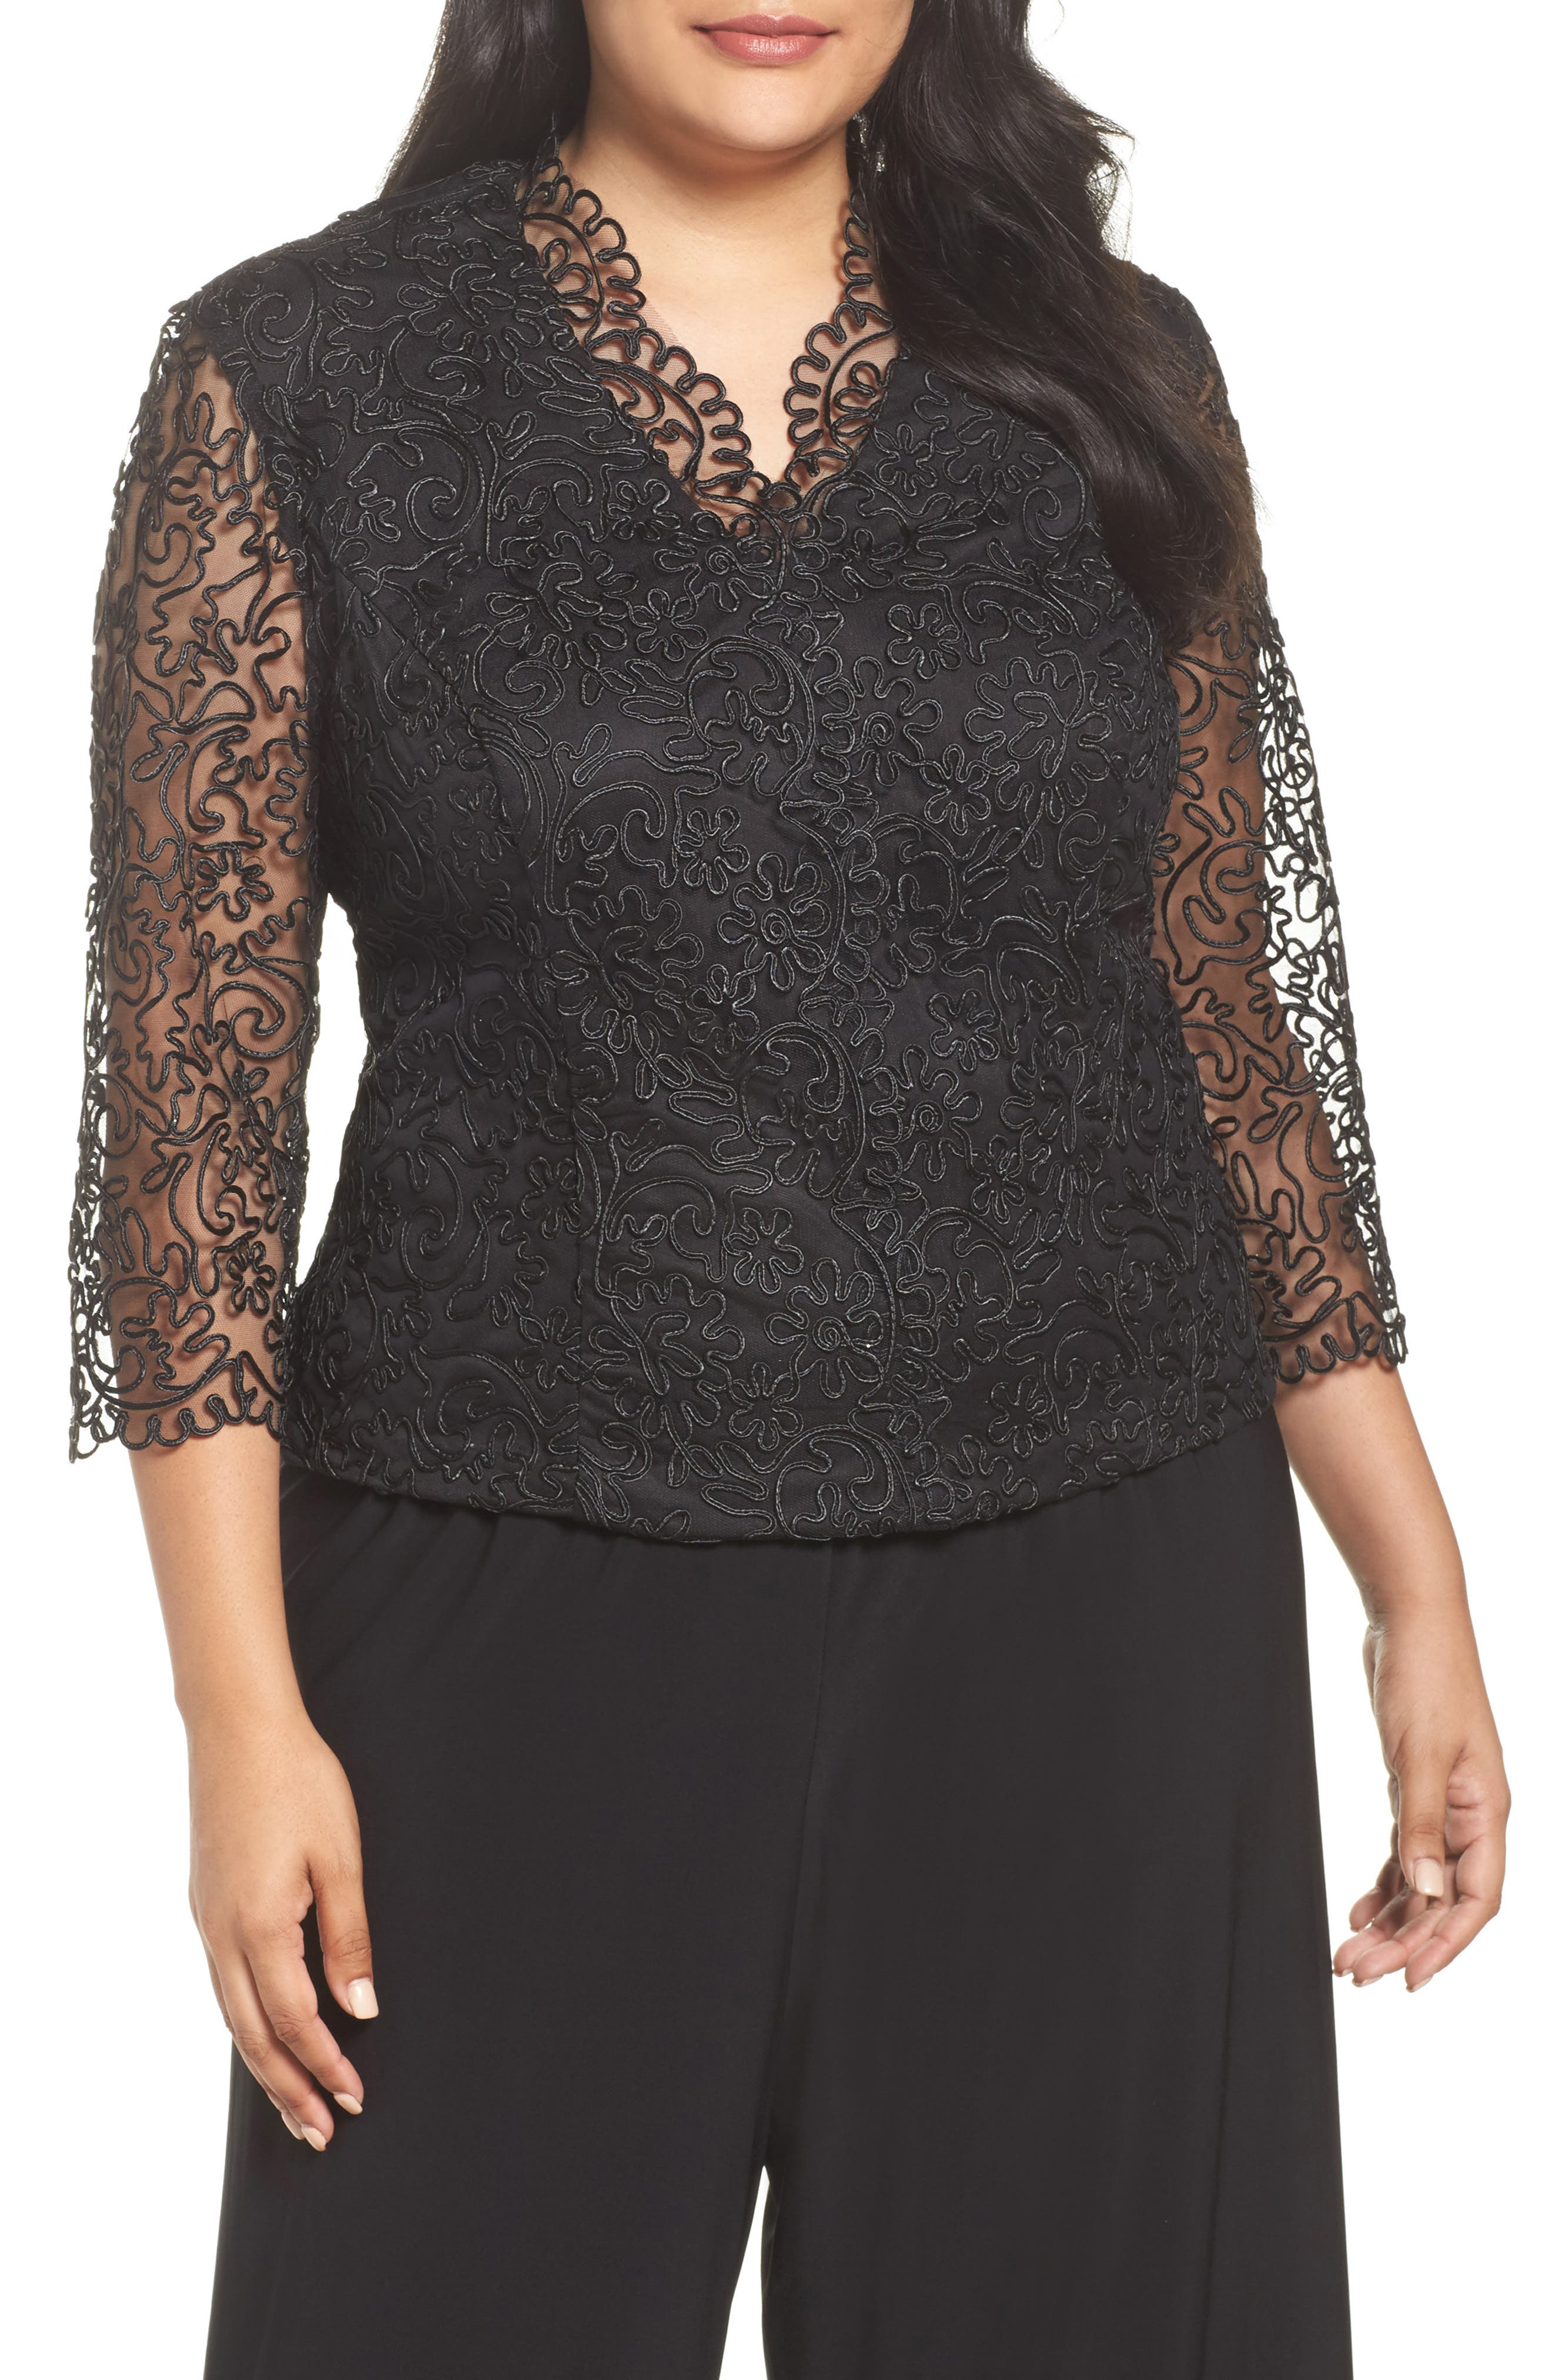 Main Image - Alex Evenings Embroidered Illusion Sleeve Blouse (Plus Size)